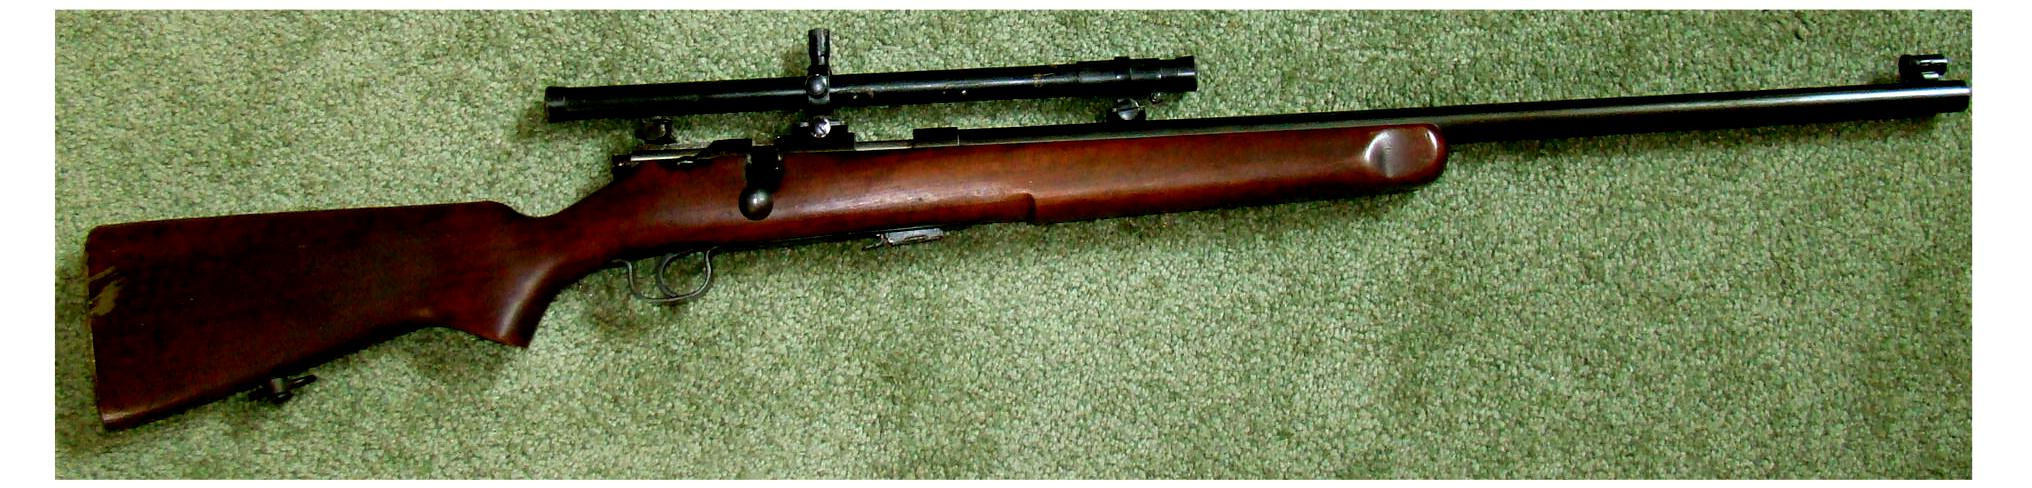 Click image for larger version.  Name:gun pic's (14).JPG Views:23 Size:201.5 KB ID:369427